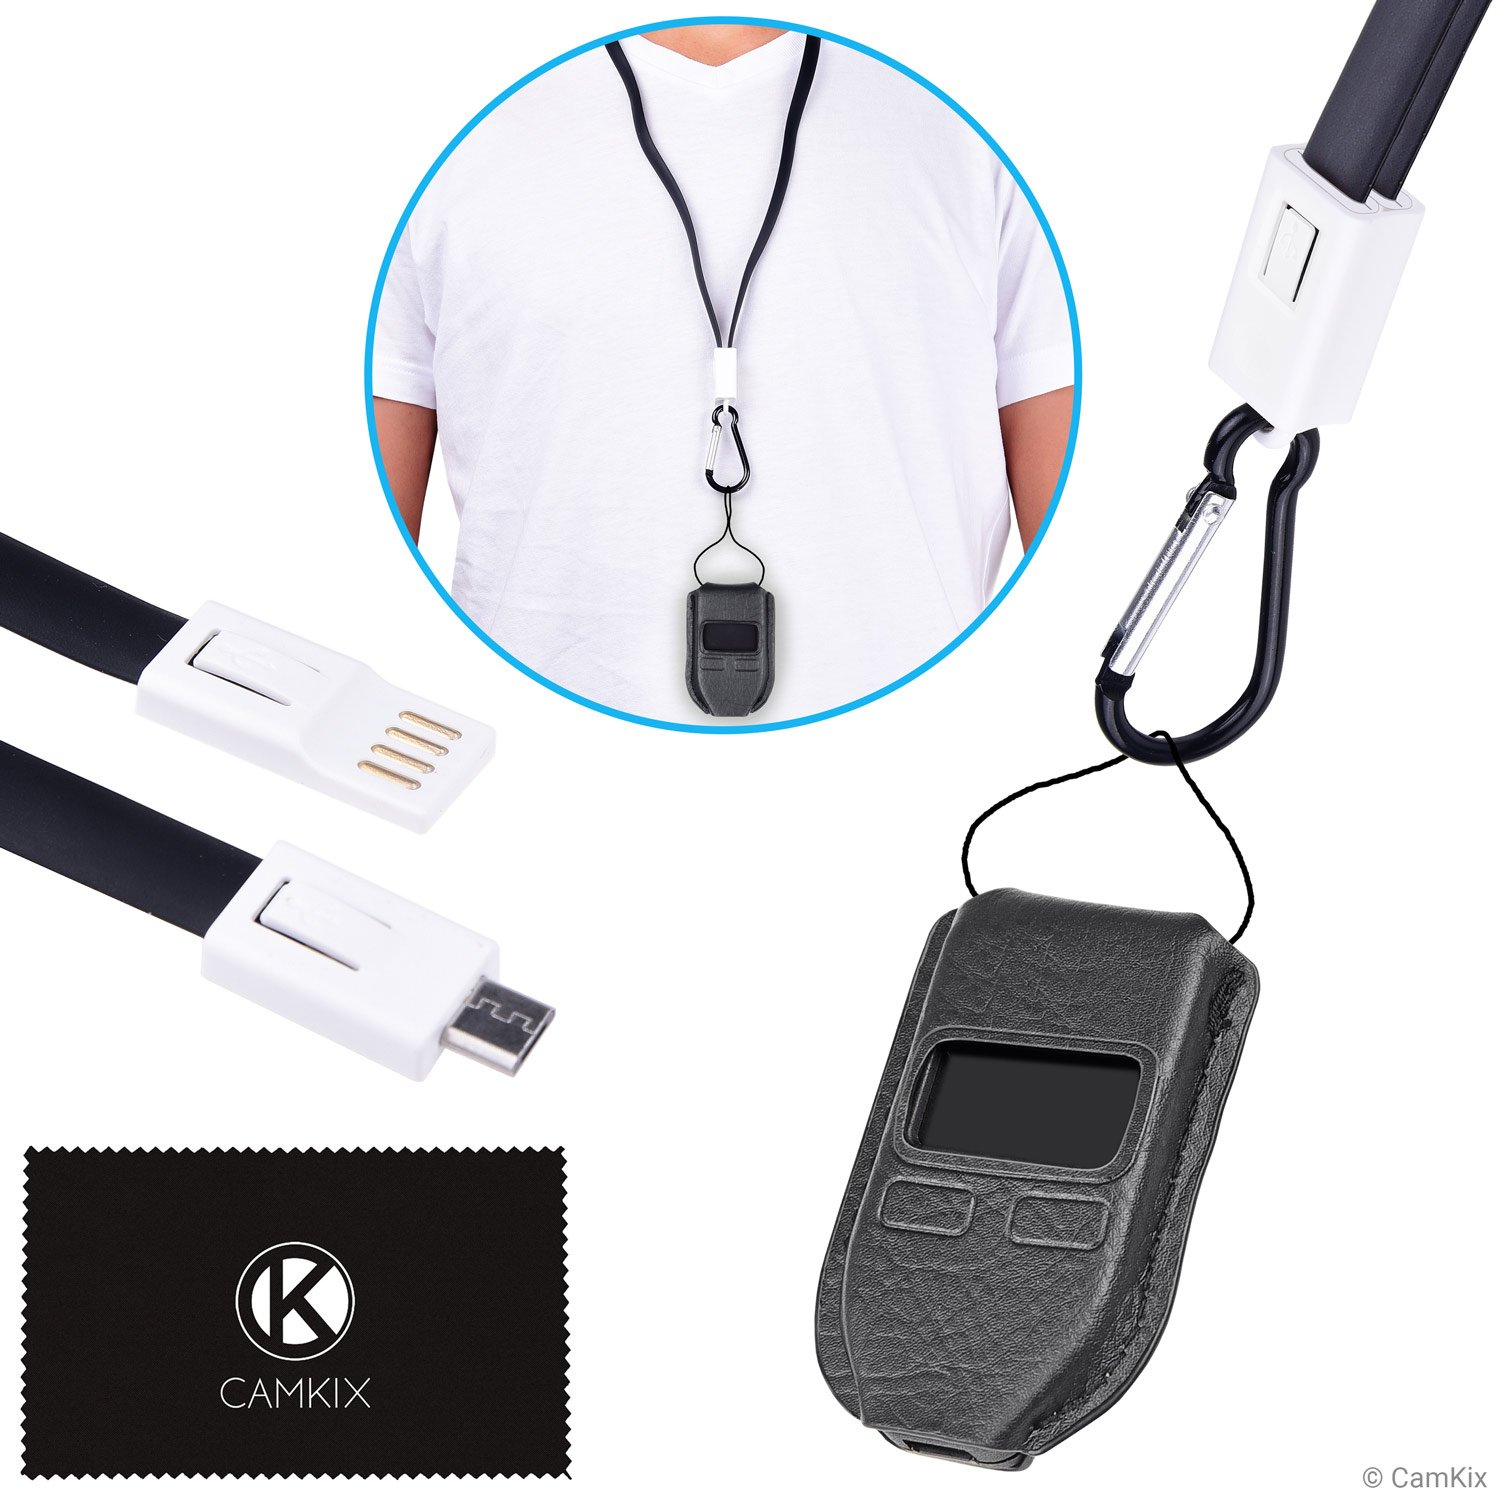 2in1 Kit for Trezor One Bitcoin/Cryptocurrency Wallet - Tailor Made Protective Case - USB Lanyard for Transport, Power and Data Transfer - Carabiner/Tether to Protect Against Loss by CamKix